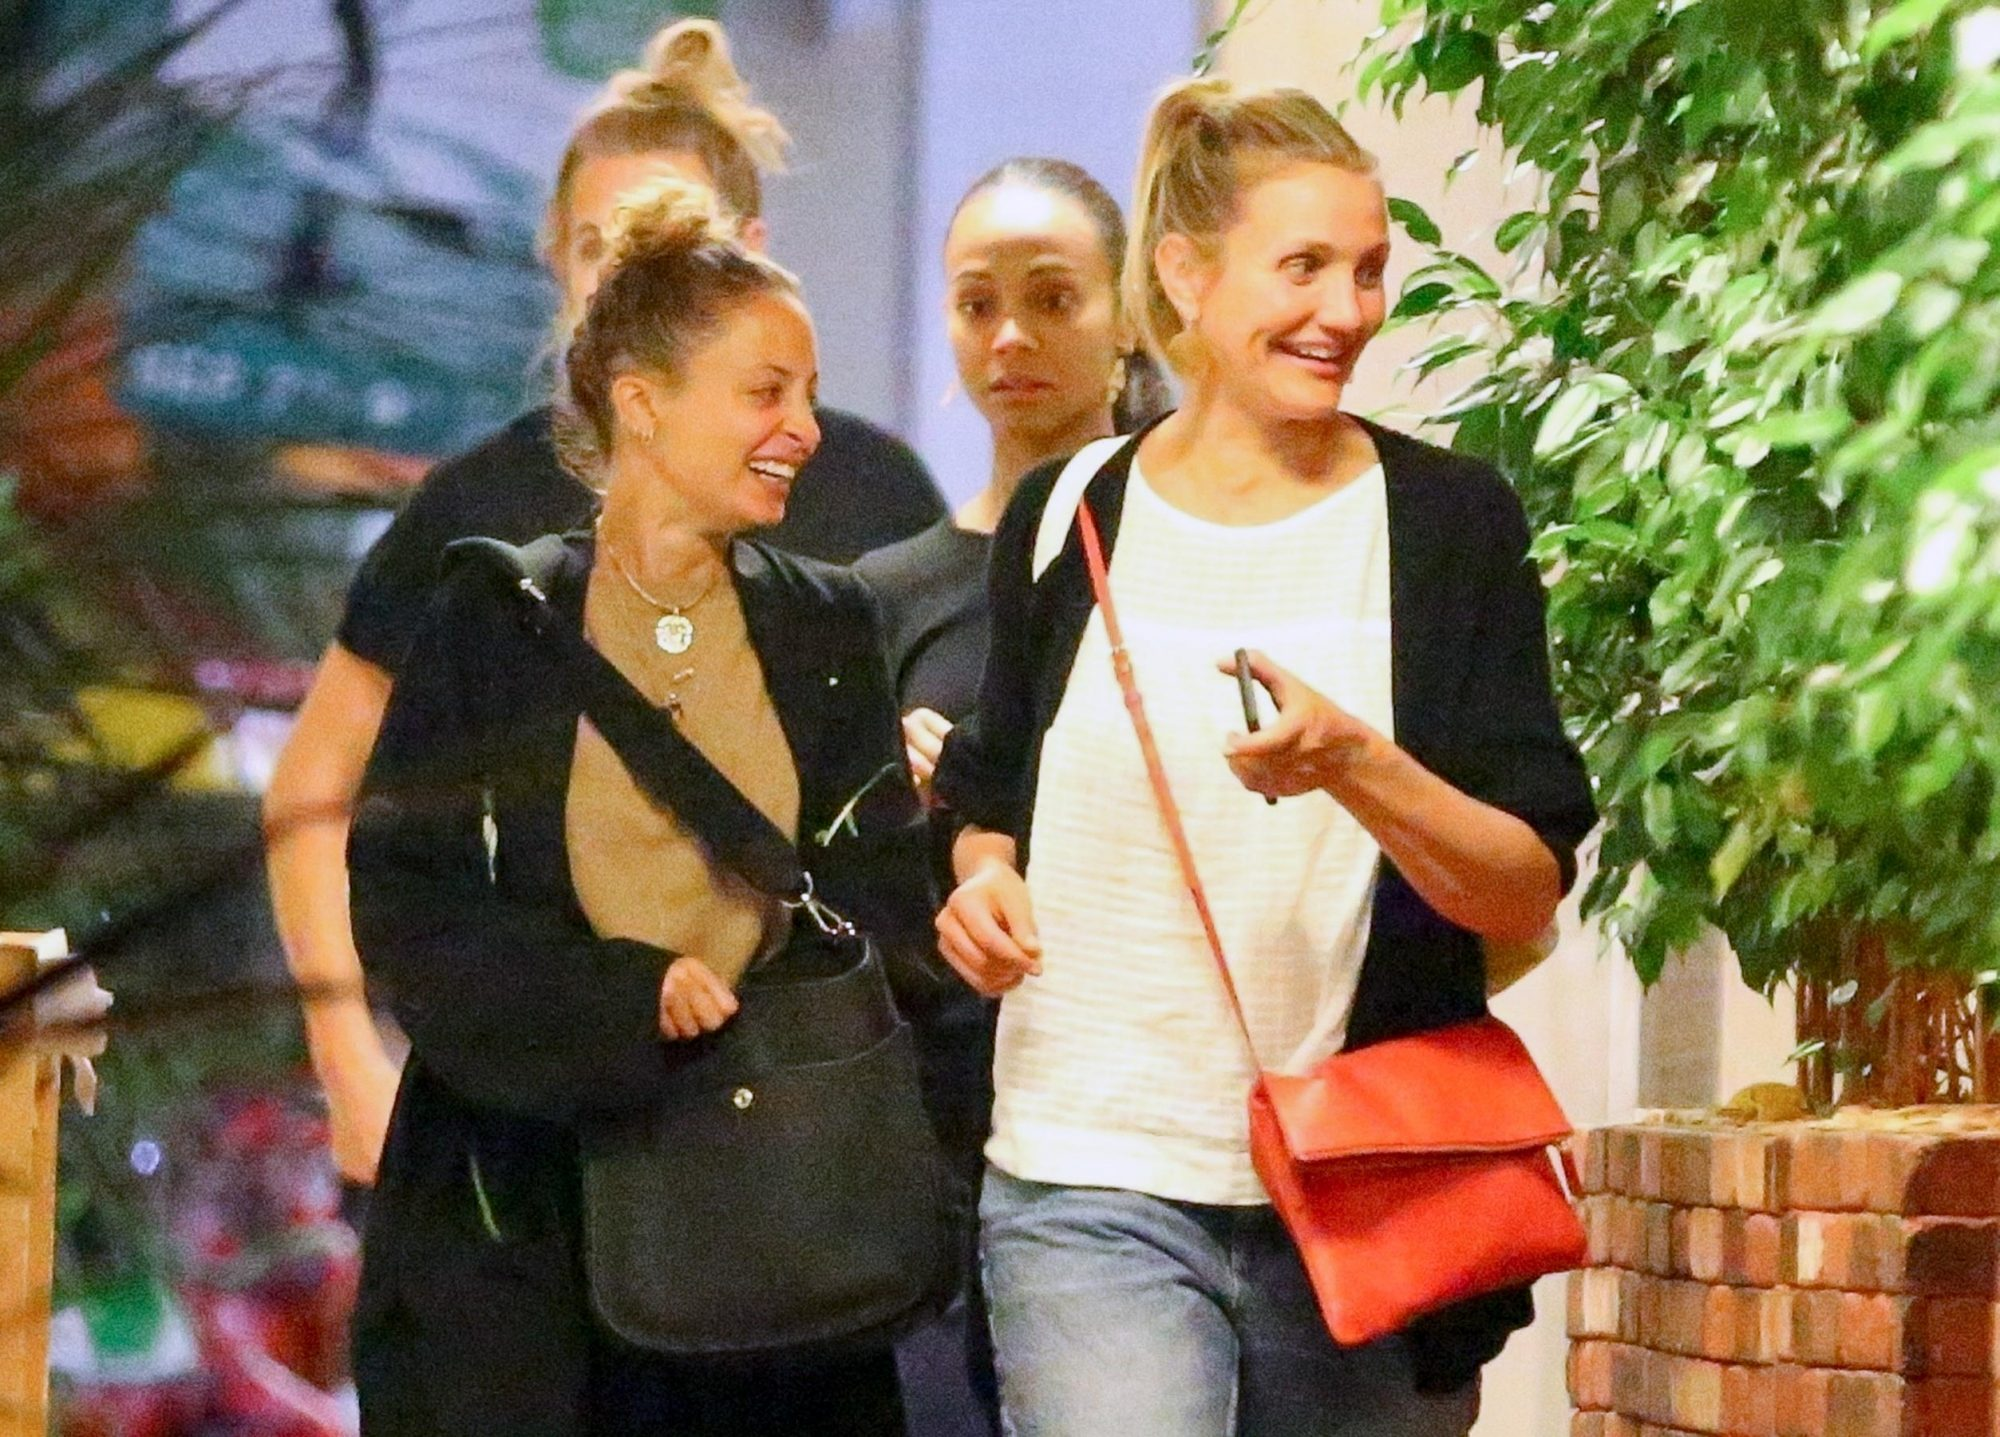 *EXCLUSIVE* Nicole Richie, Cameron Diaz, Zoe Saldana and Marco Perego enjoy a star-studded dinner outing in LA